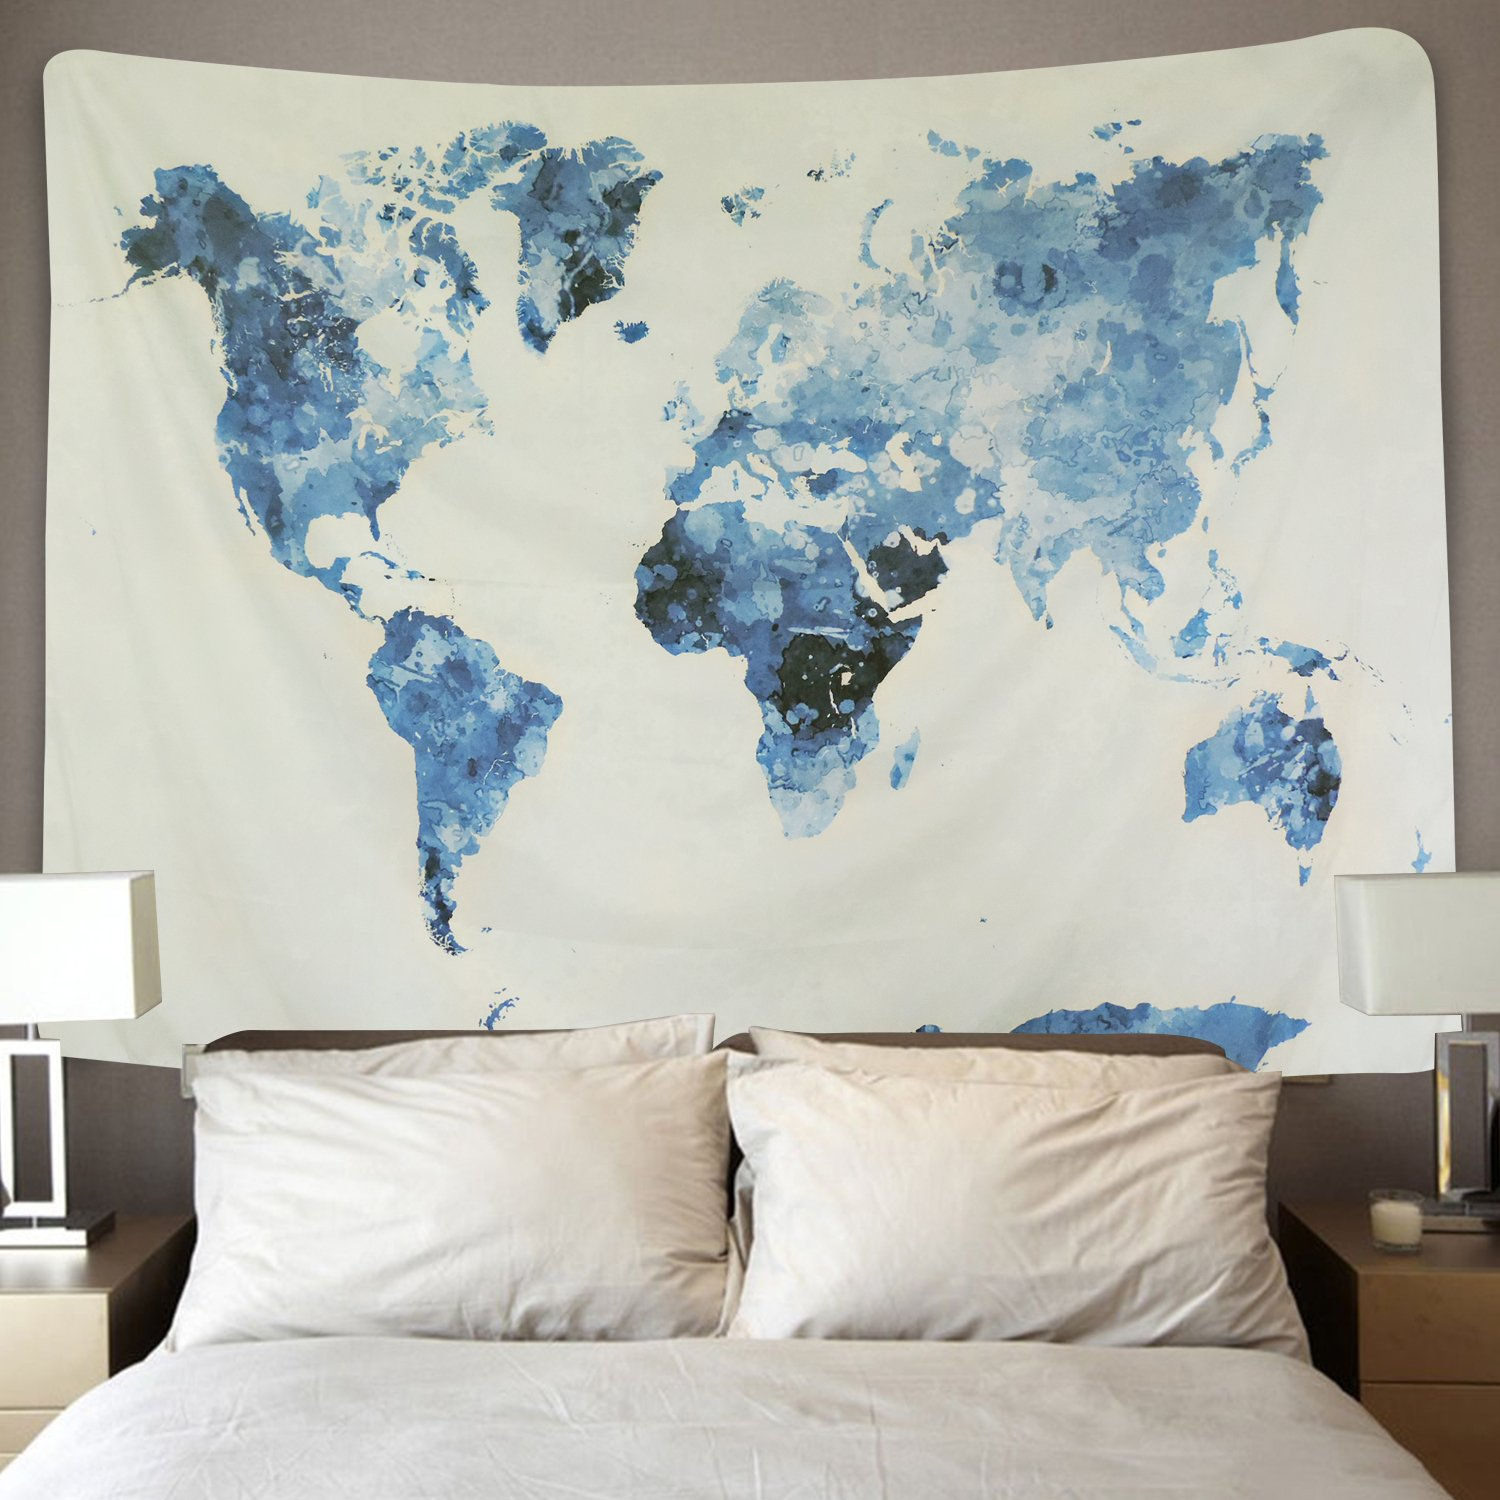 BLEUM CADE Blue Watercolor World Map Tapestry Abstract Splatter Painting Tapestry Wall Hanging Art for Living Room Bedroom Dorm Home Decor 59''X51''